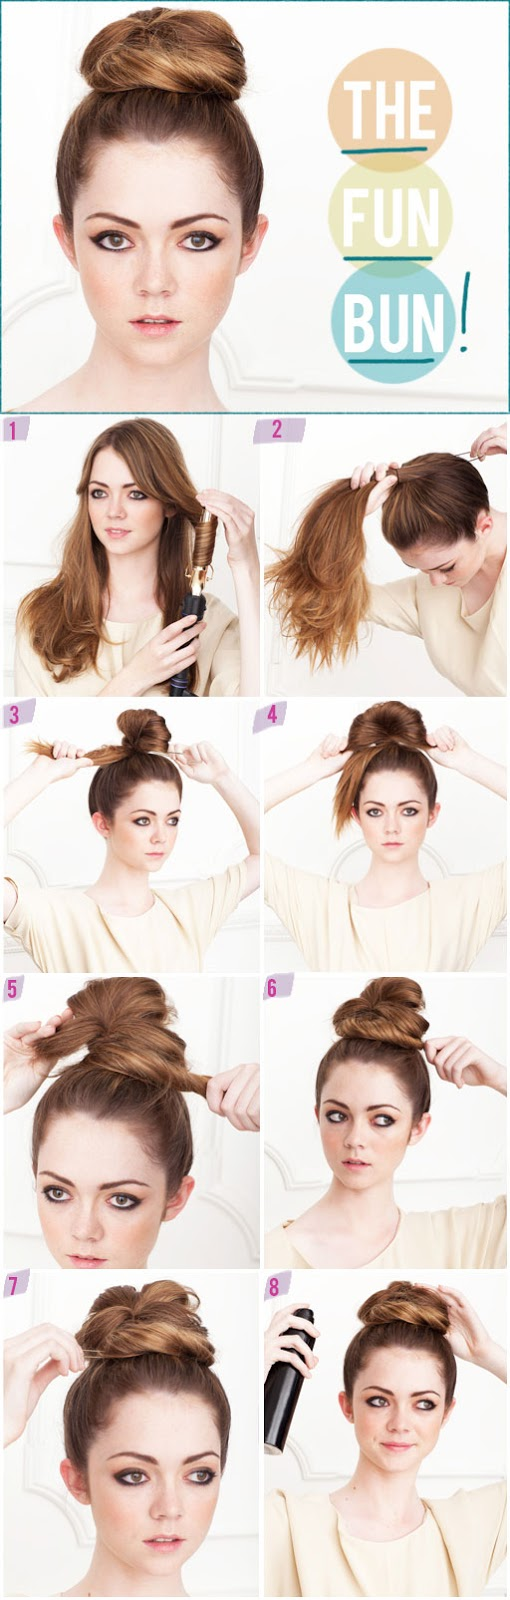 How to Make a Hair Bun for Your Wedding